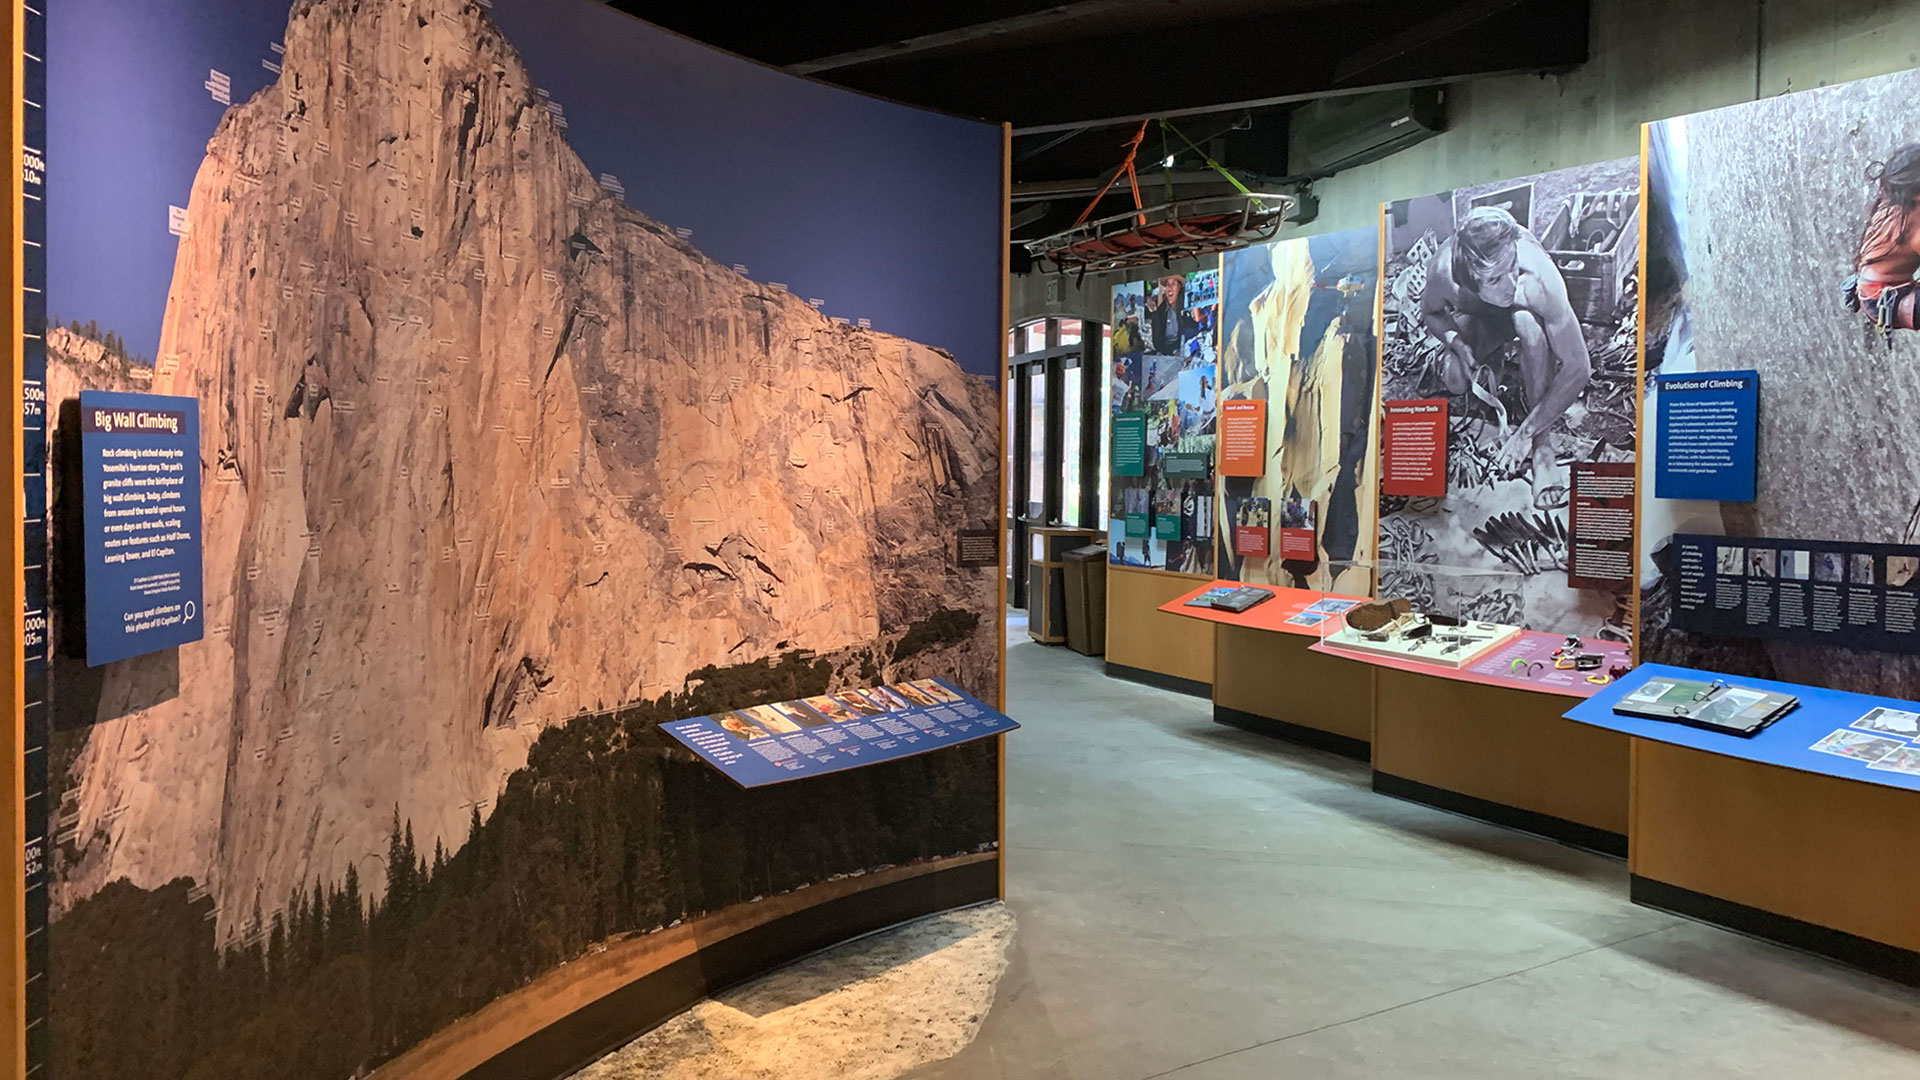 A full-wall mural showcases an ultra-high resolution photo of El Capitan.